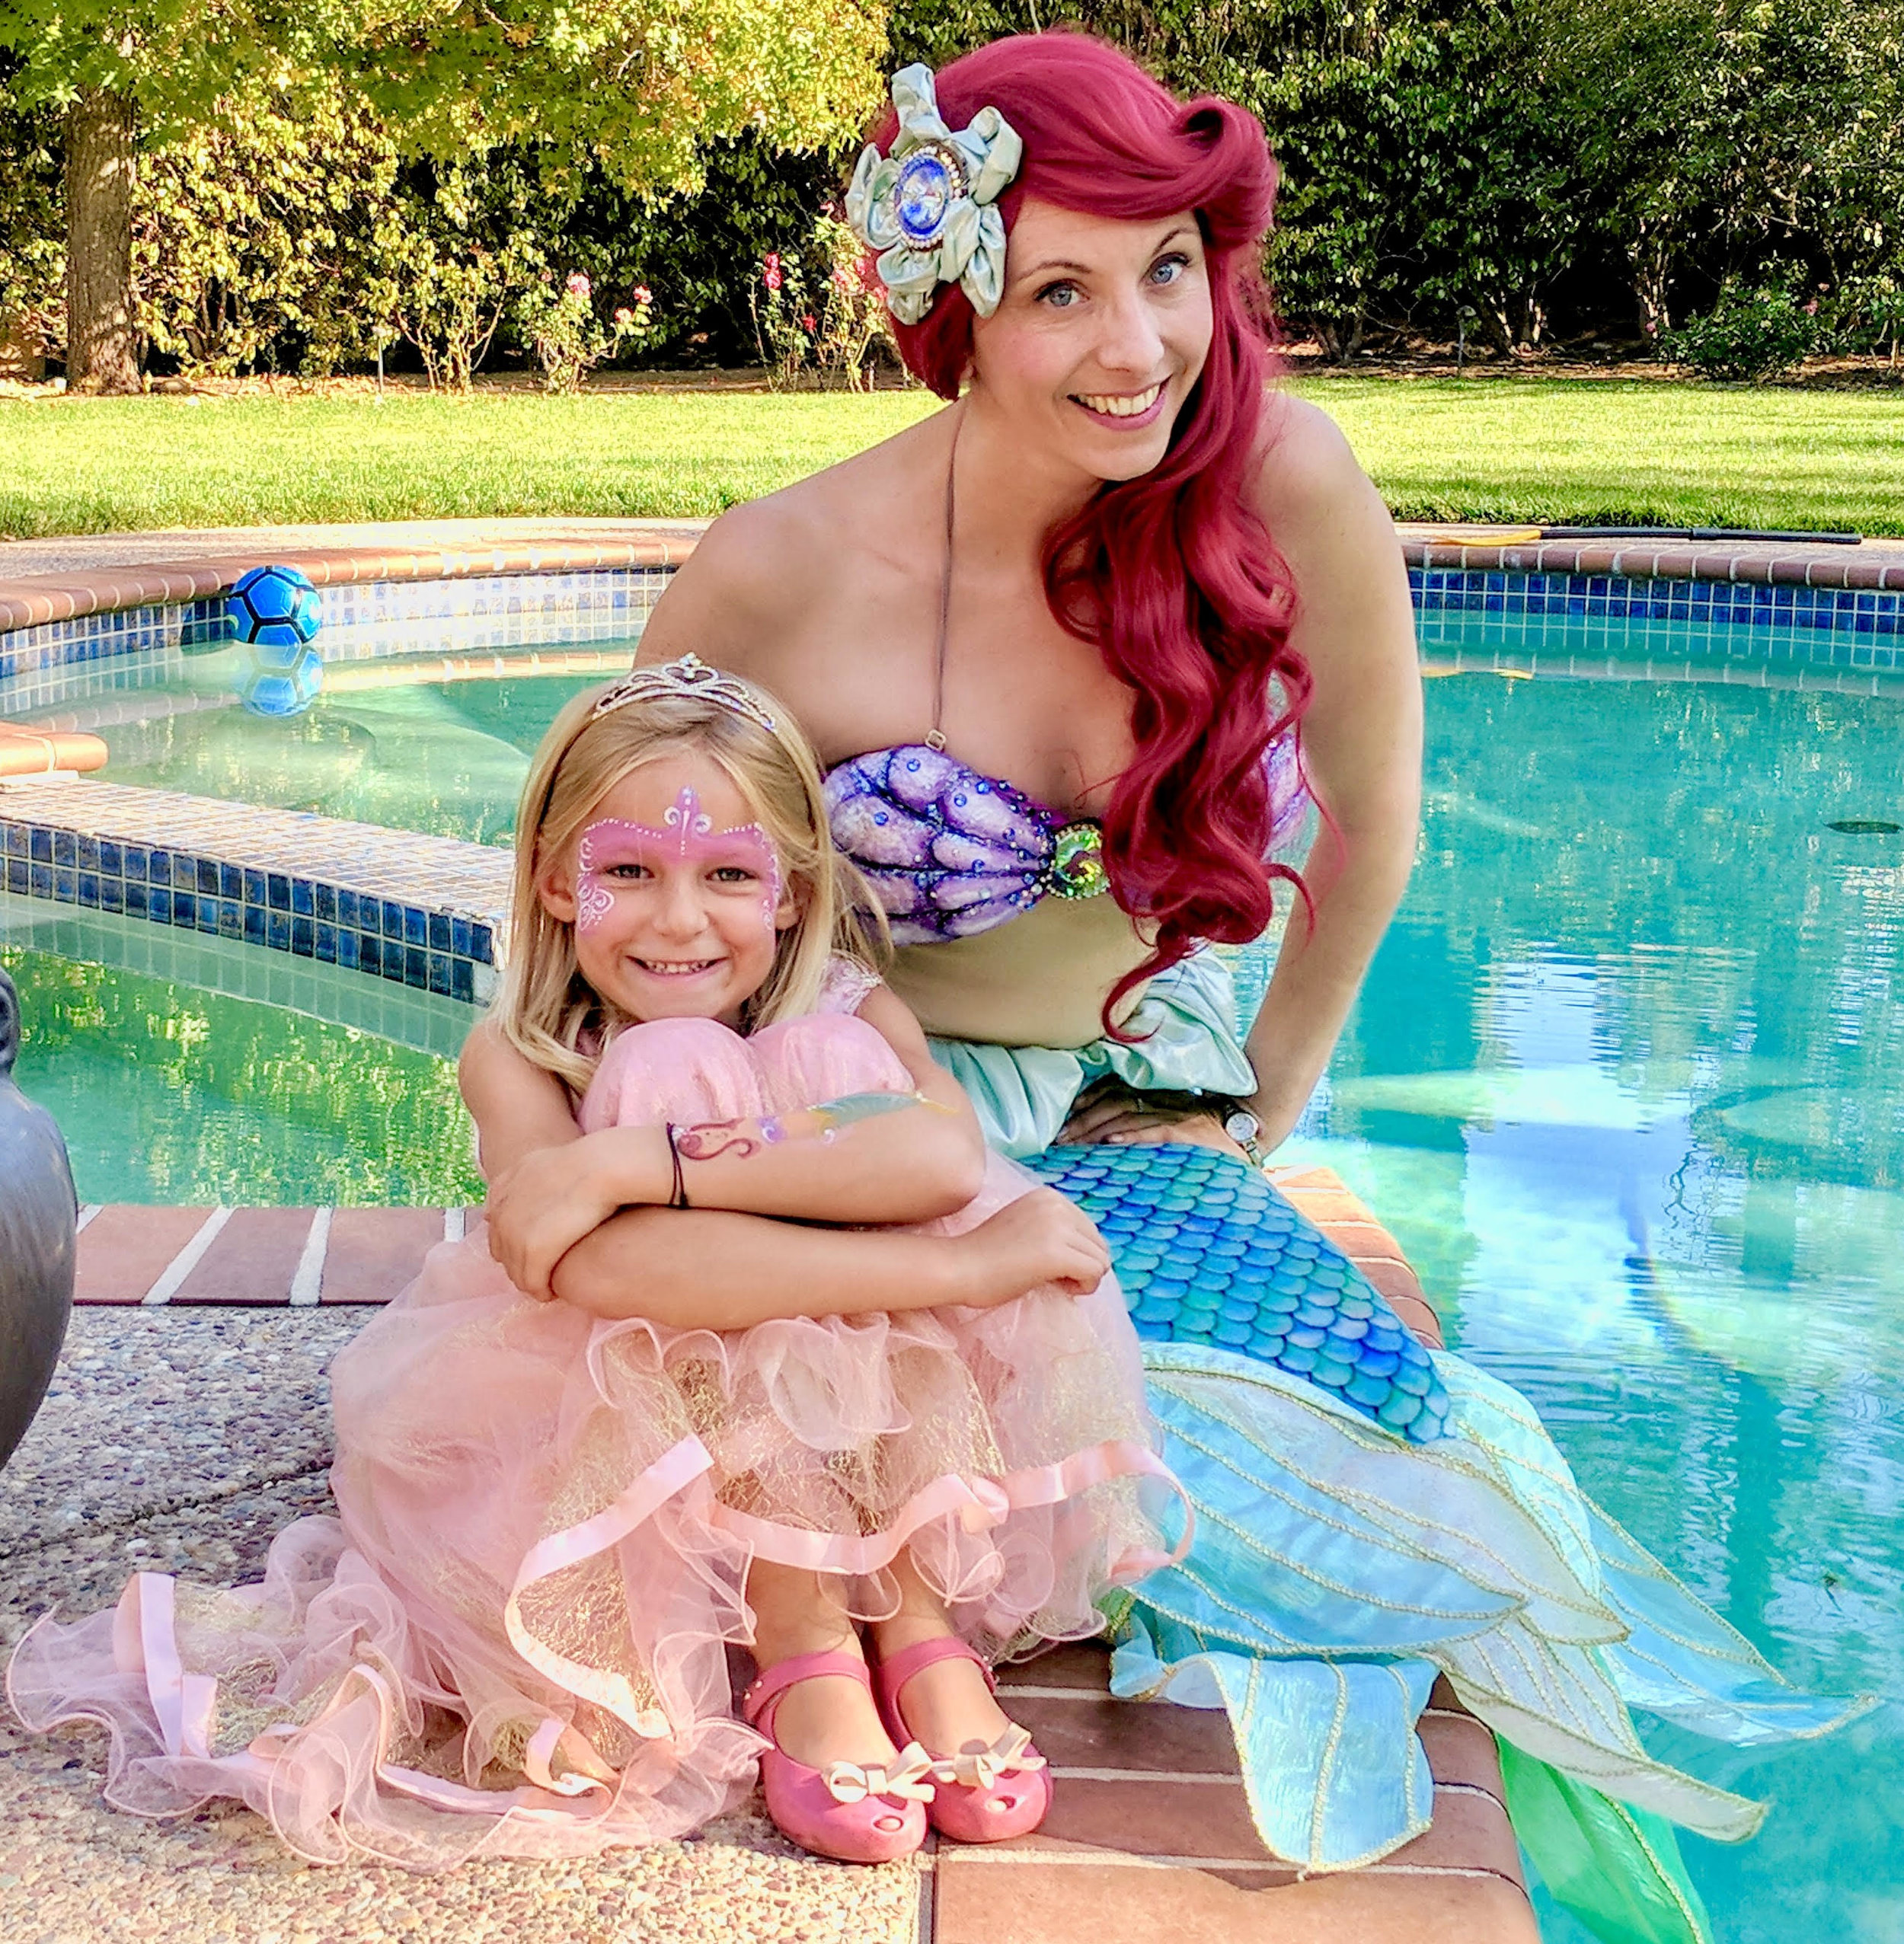 ariel_mermaid_party_magic_show.jpg